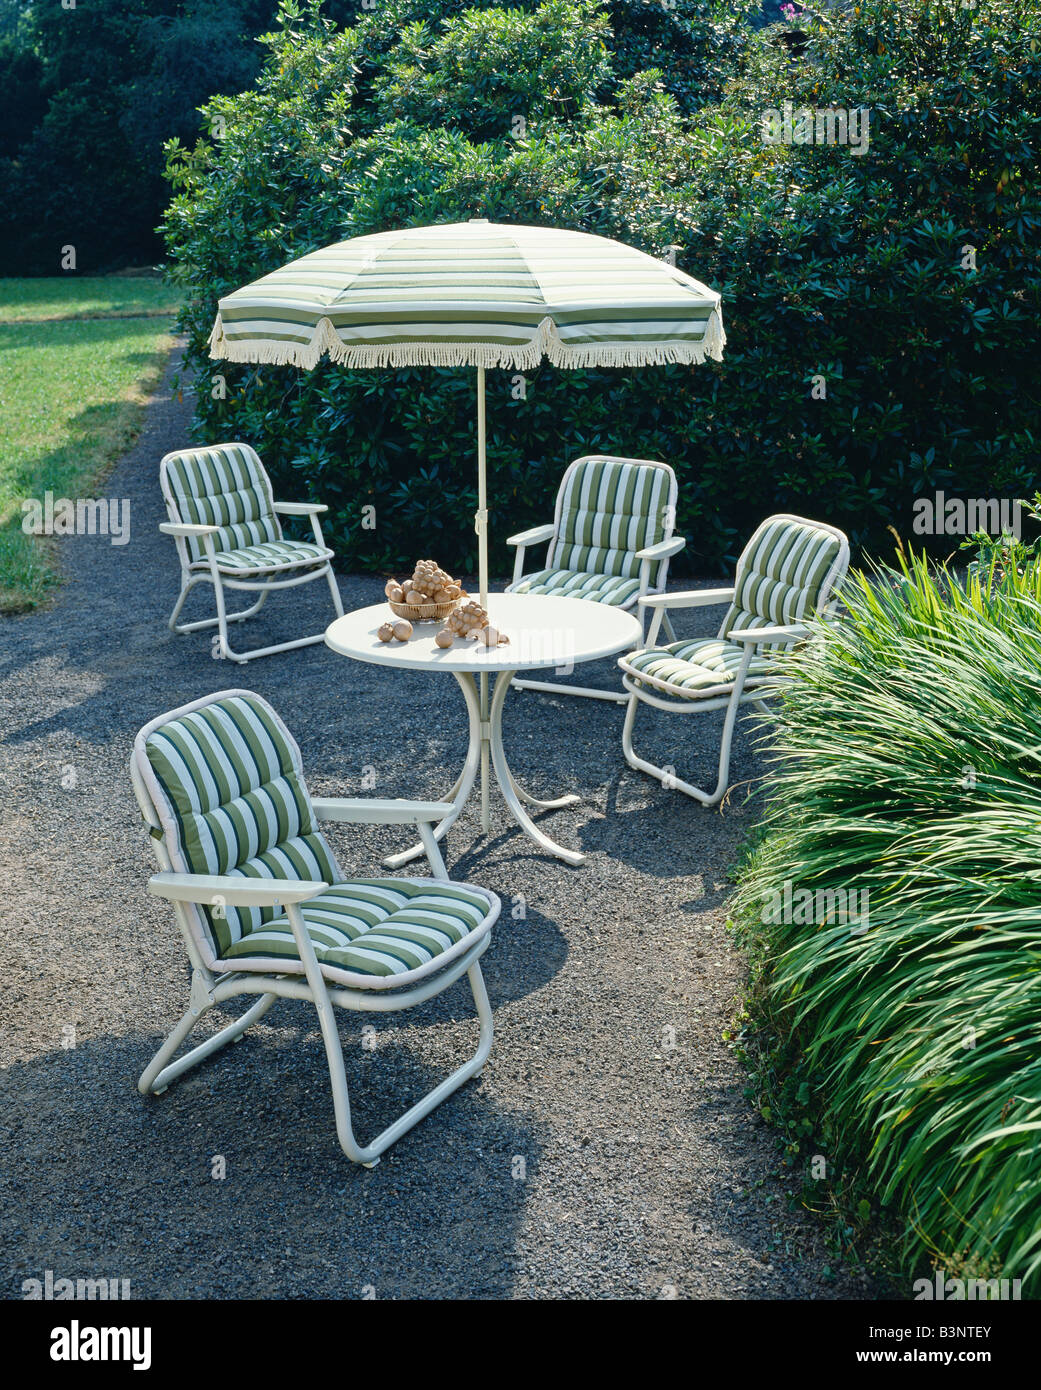 GARDEN FURNITURE ARMCHAIRS AND PARASOL DECORATED WITH GREEN STRIPED FABRIC